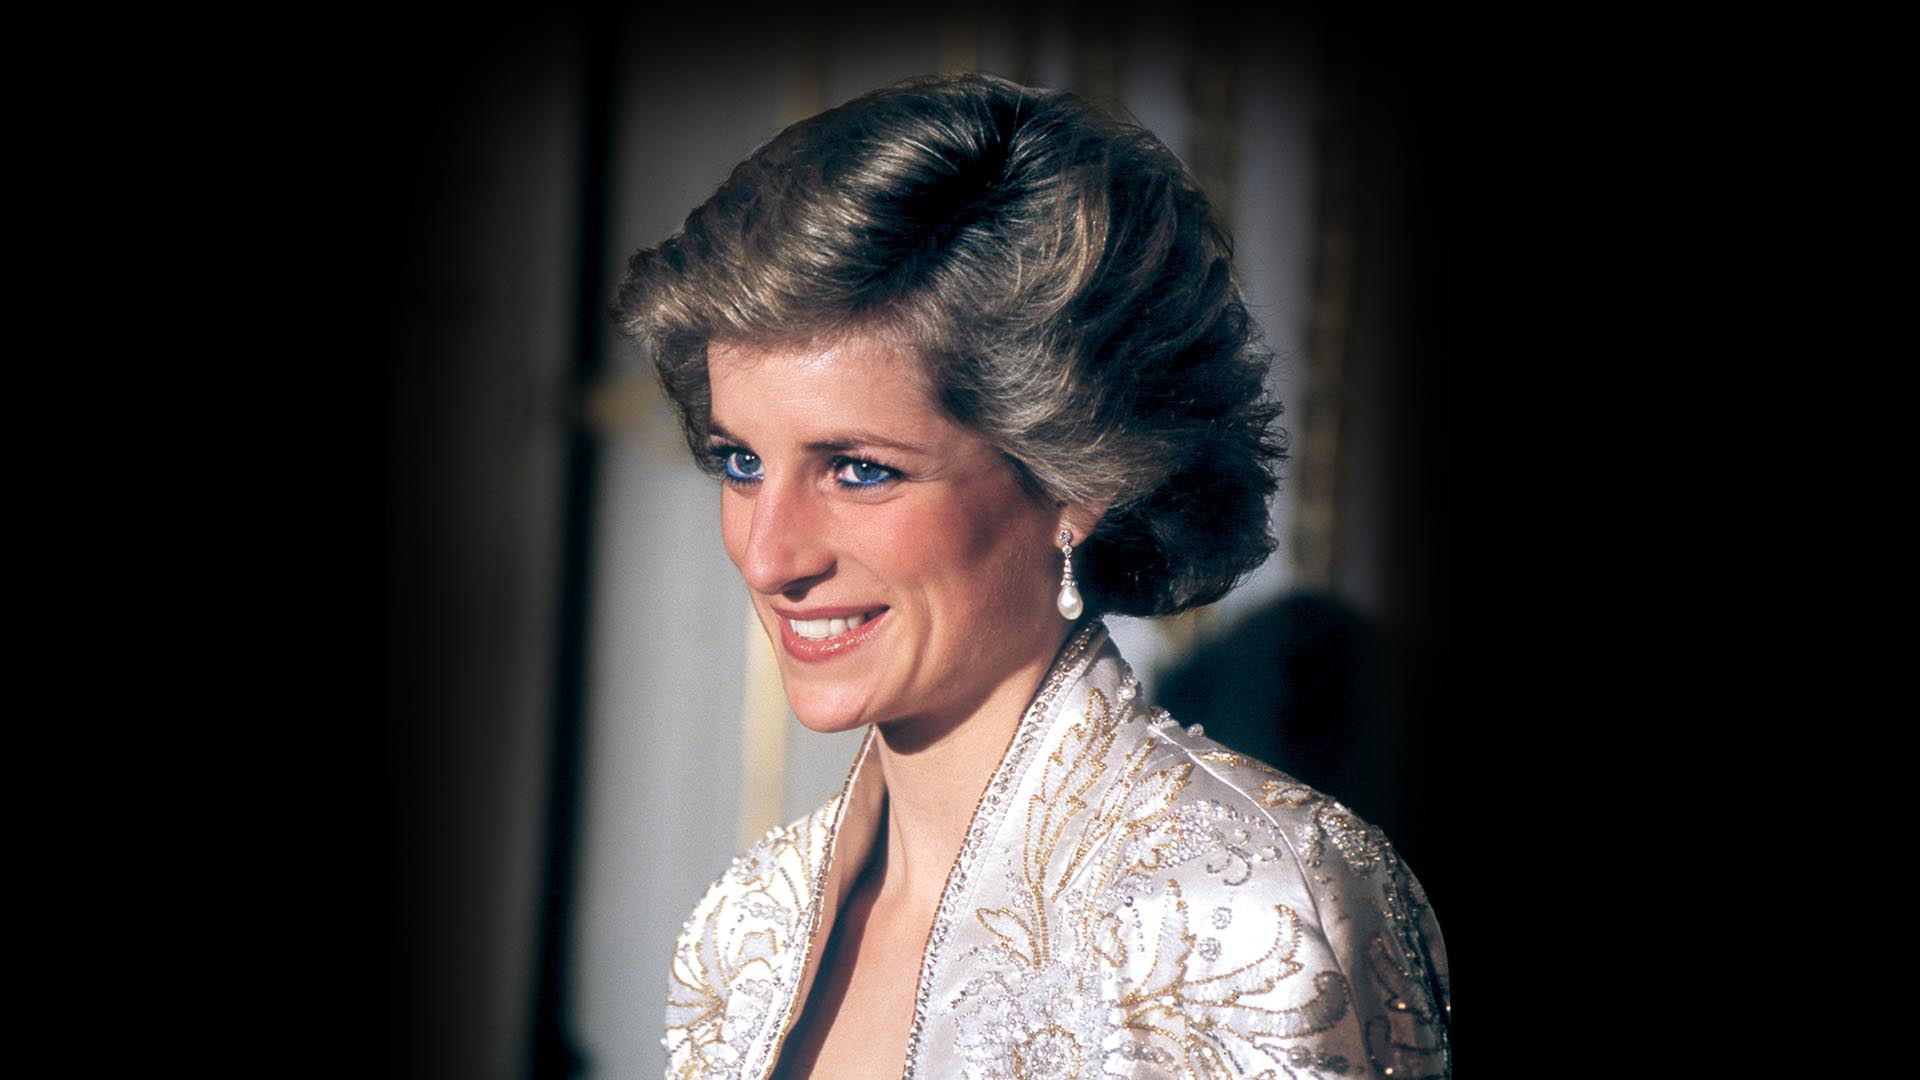 Watch Diana The People S Princess 20 Years On Prime Video Images, Photos, Reviews